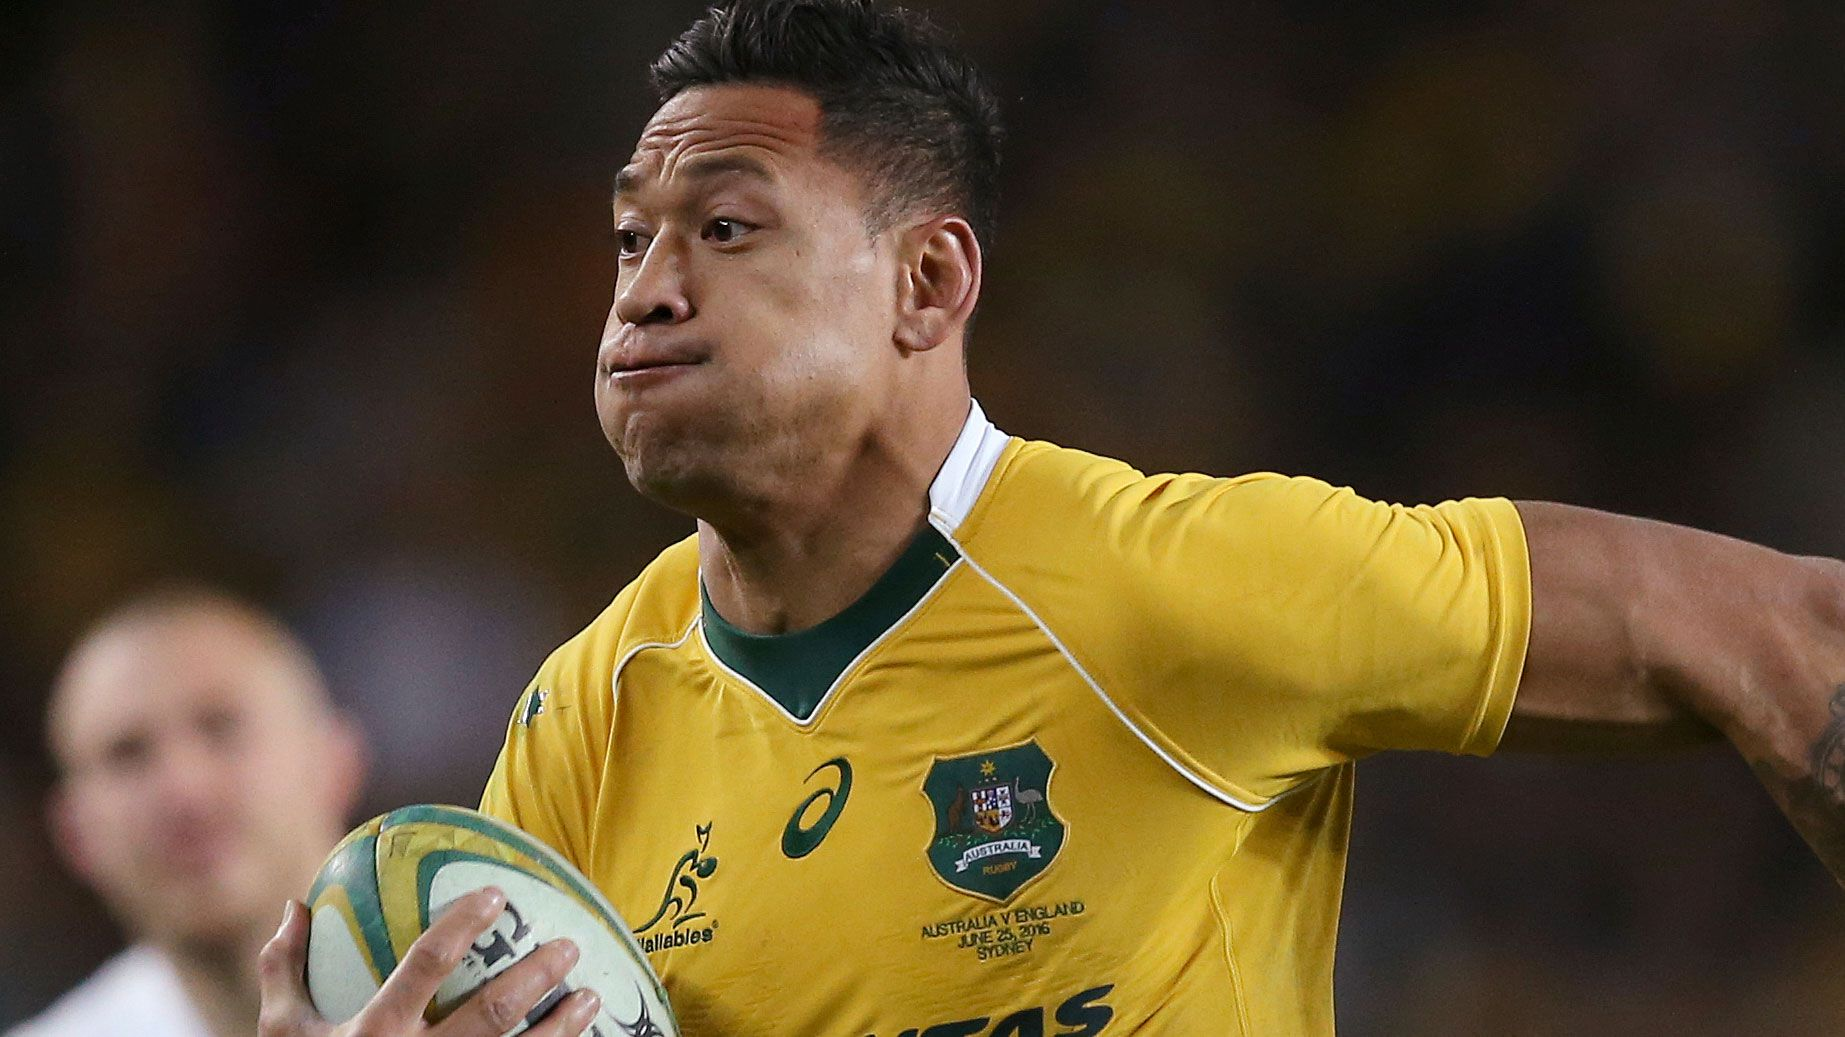 Wallabies greats Drew Mitchell, Mark Gerrard slam Israel Folau Go Fund Me page